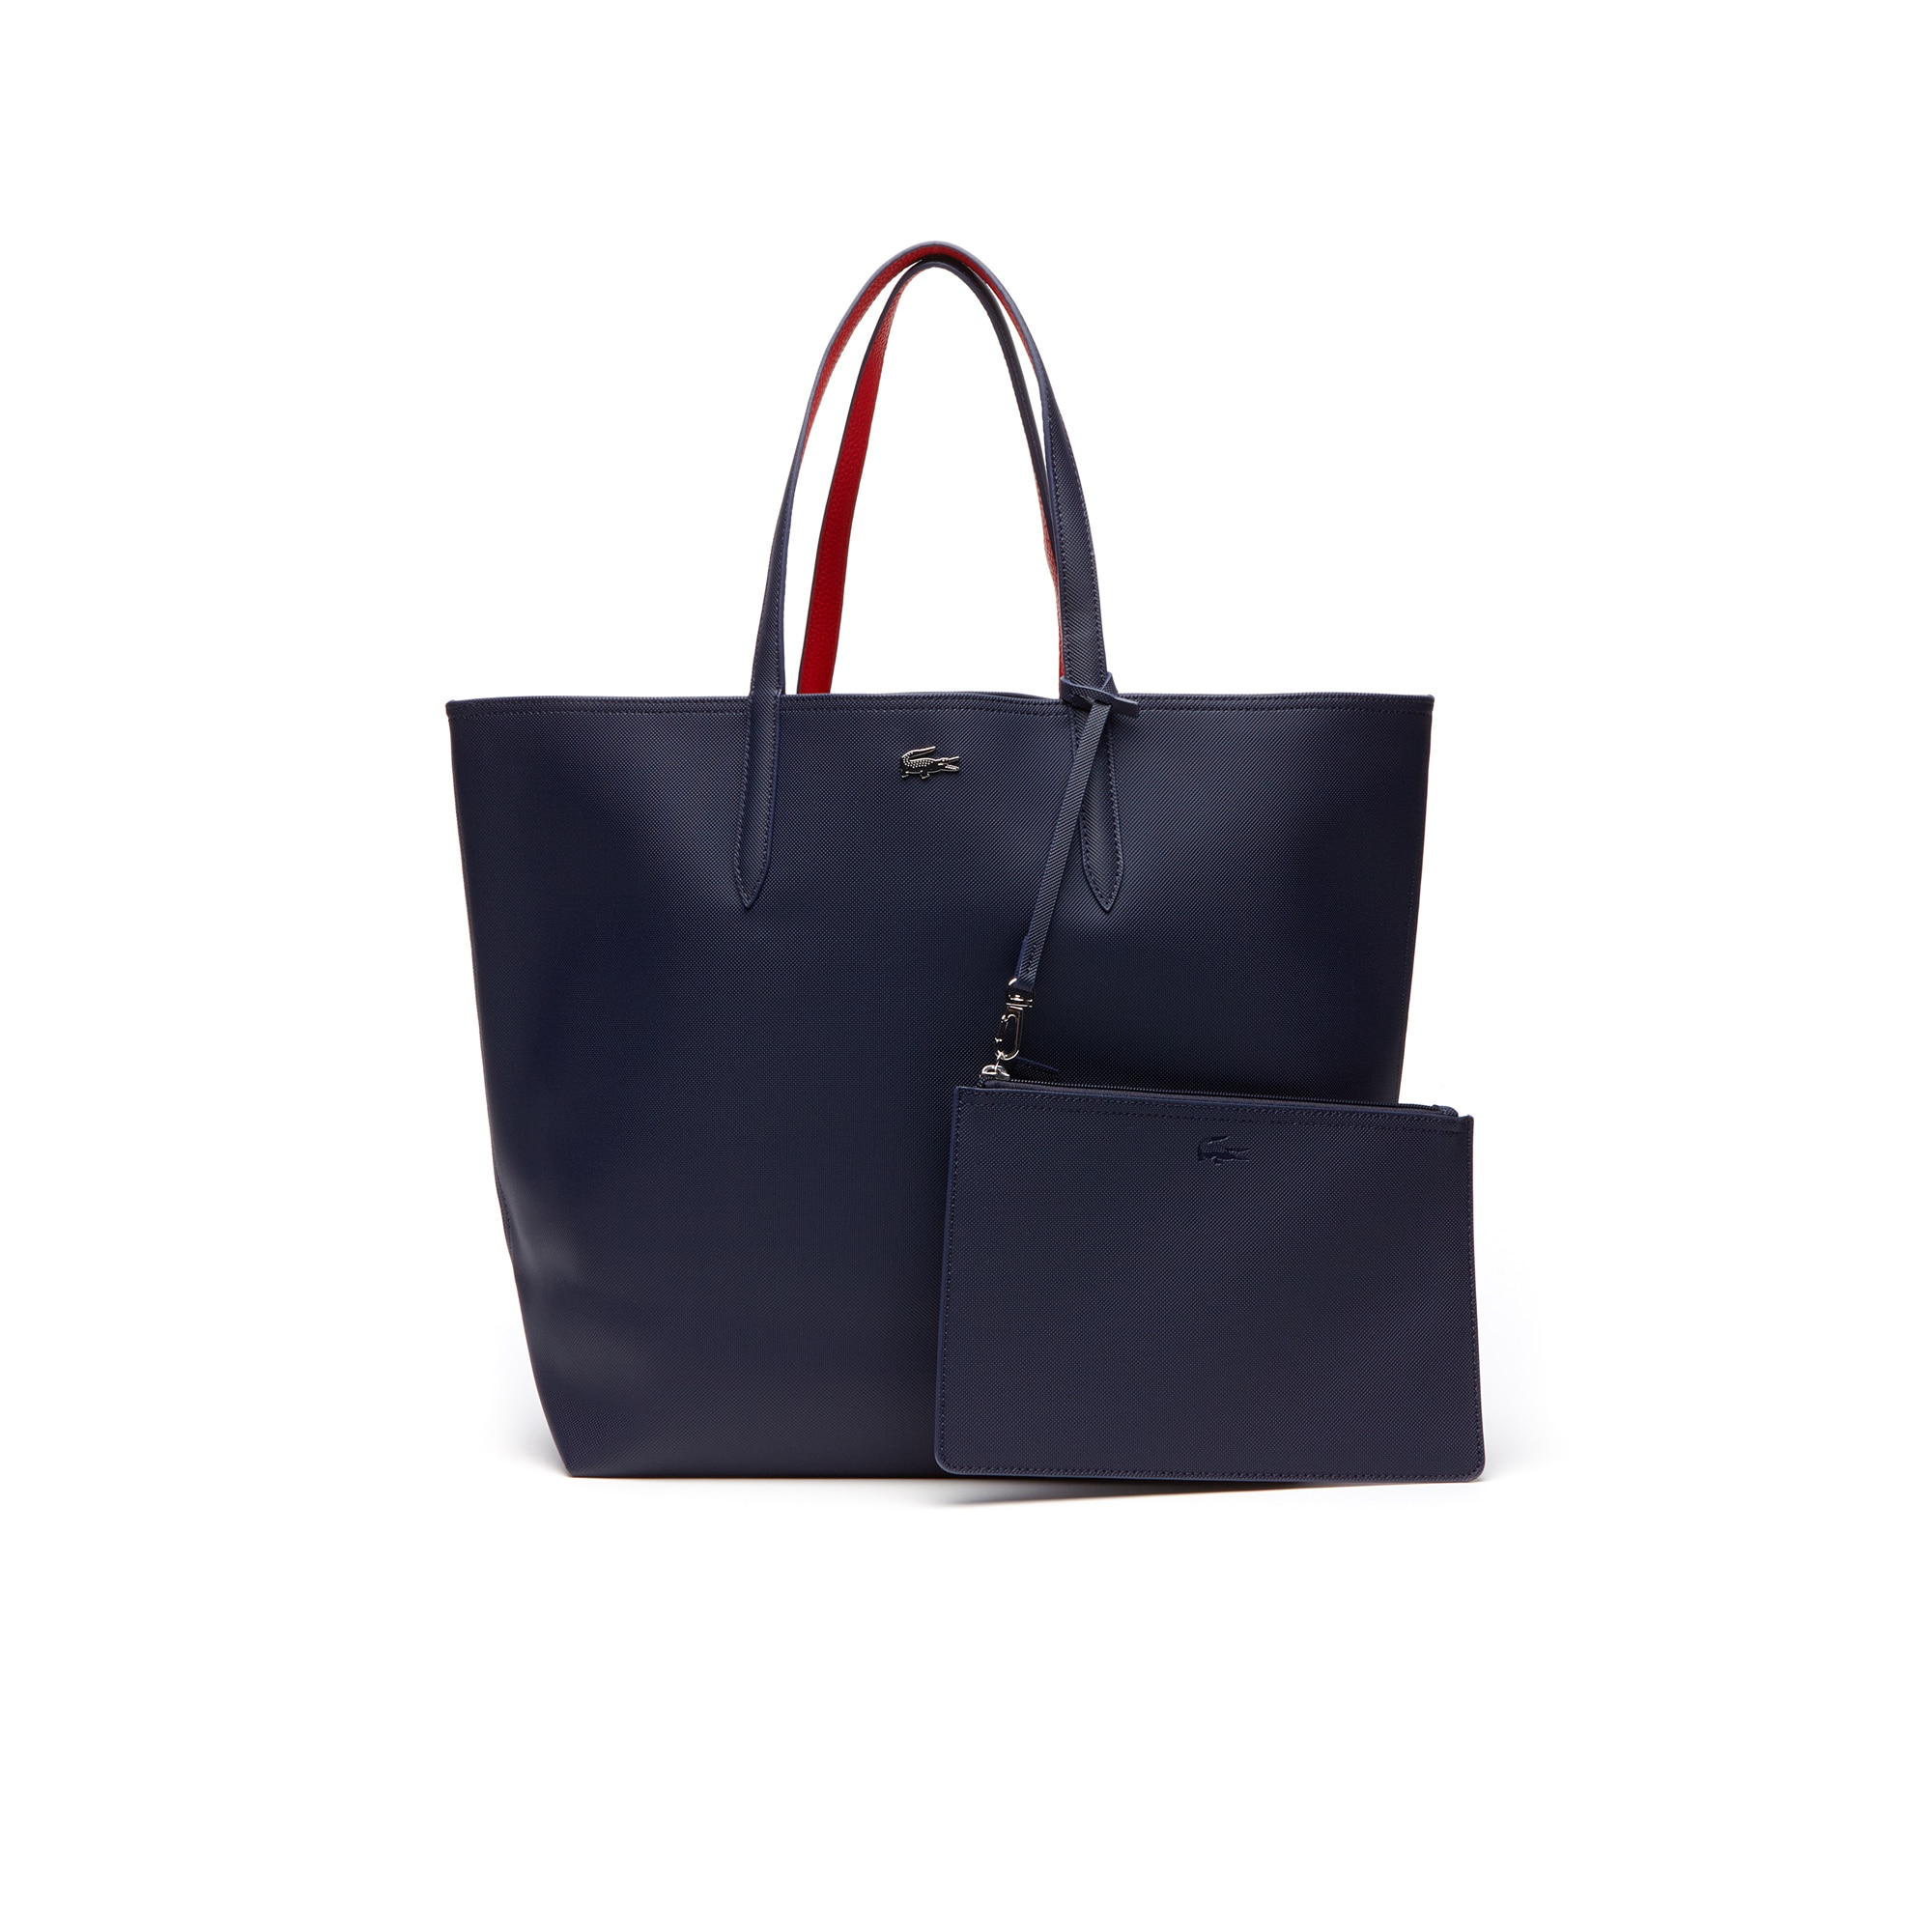 Grande shopping bag Anna reversibile bicolore